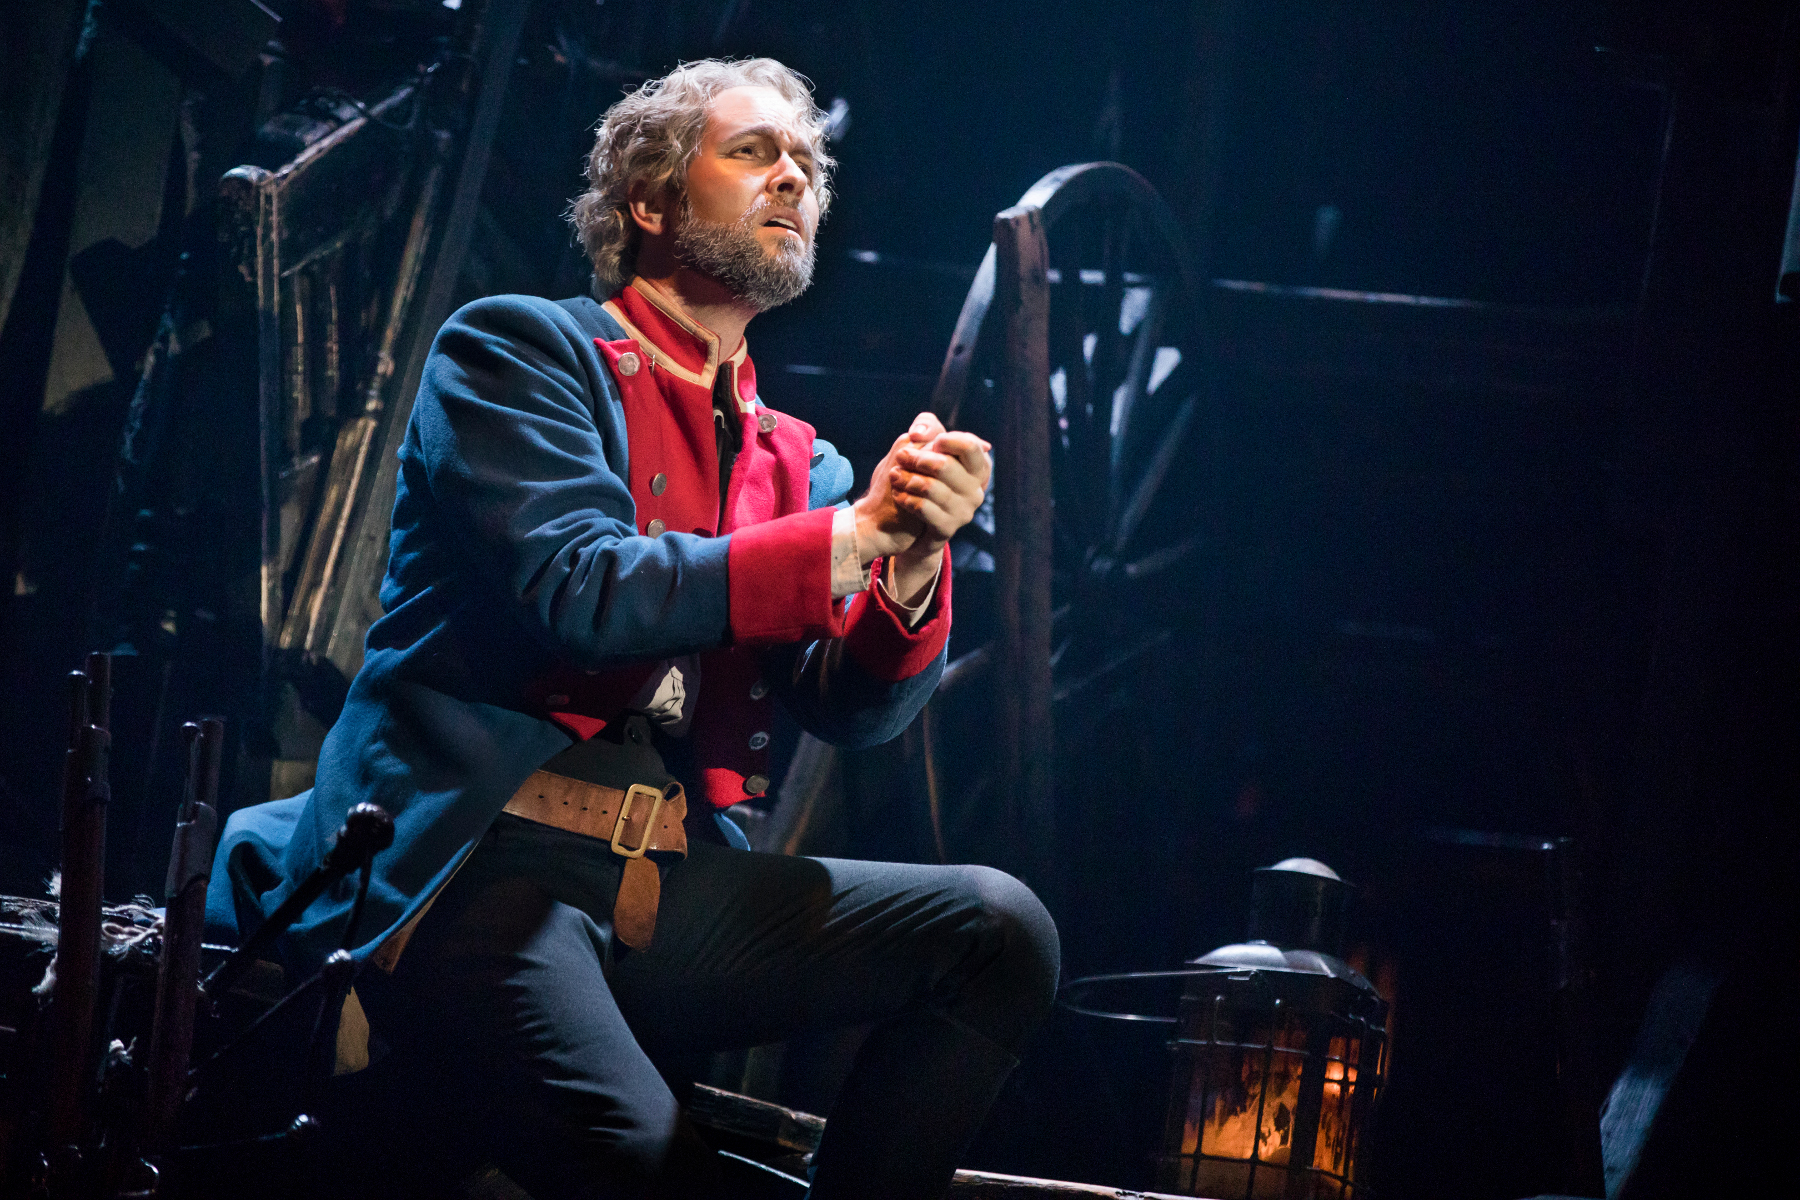 bring out the jean valjean Jean valjean is the protagonist of victor hugo's 1862 novel les misérables hugo depicts the character's 19-year-long struggle to lead a normal life after serving a prison sentence in the popular imagination, the character of jean valjean came to represent both hugo himself and leftist sentiment.